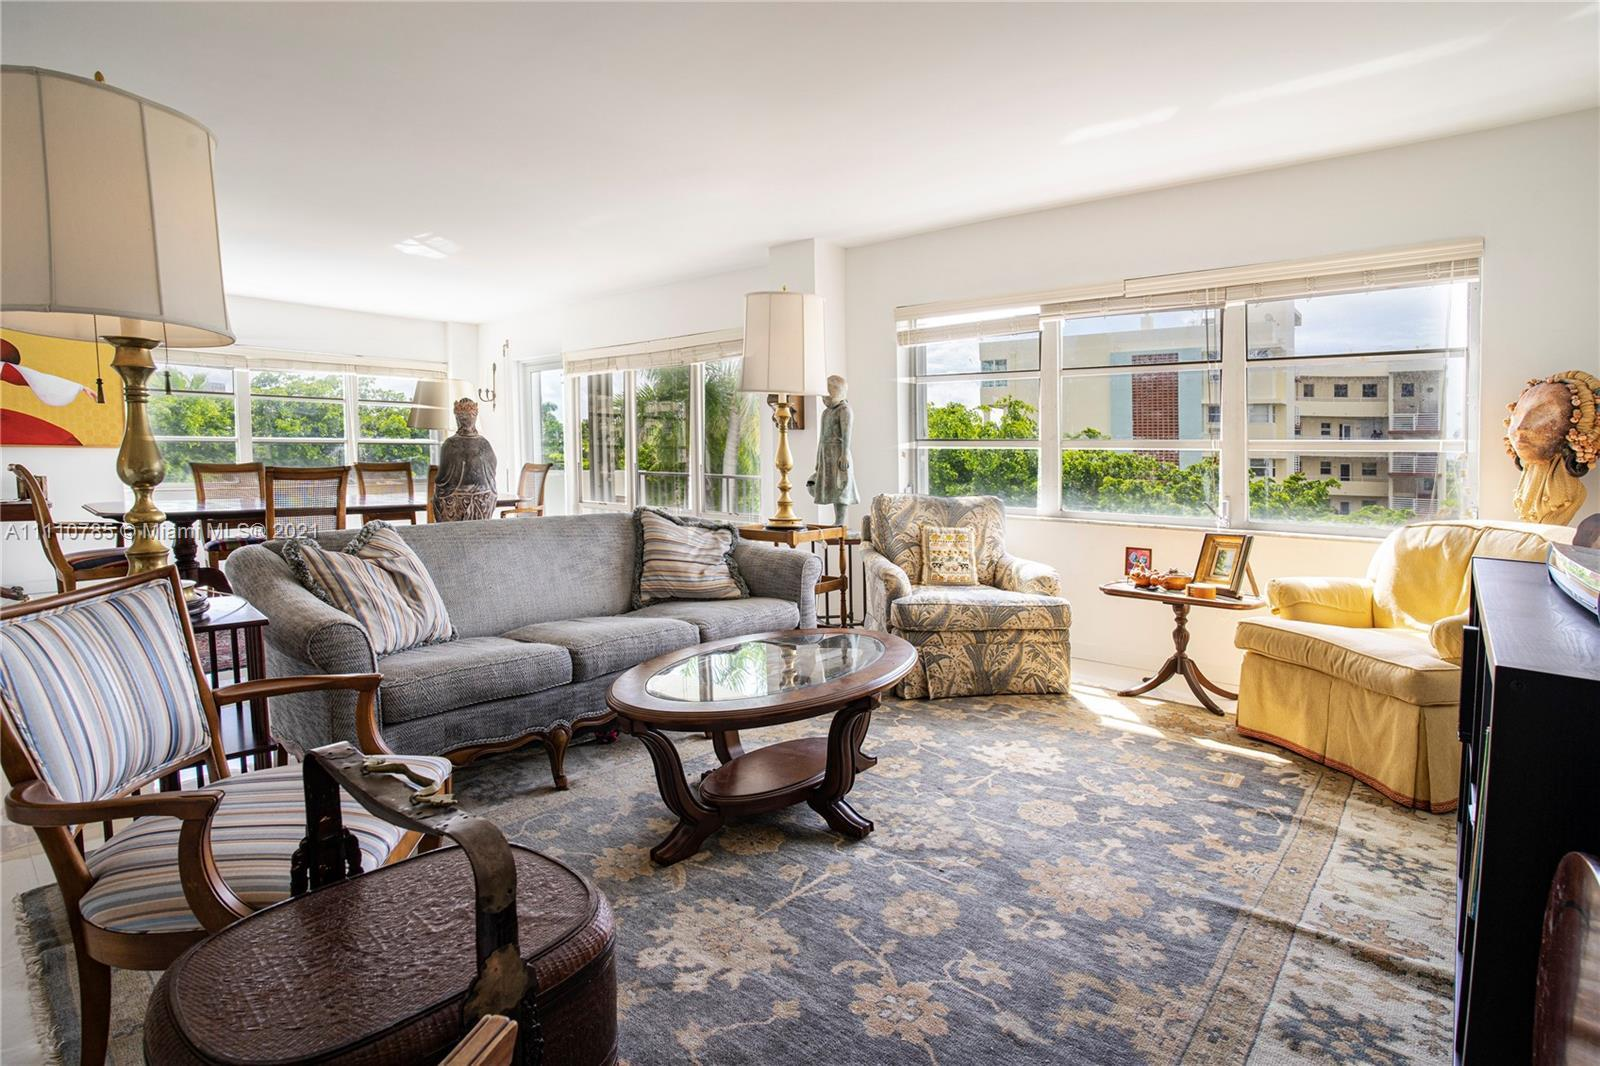 Wonderful layout with spacious living and dining, Bright condo with updated floors and imposing room